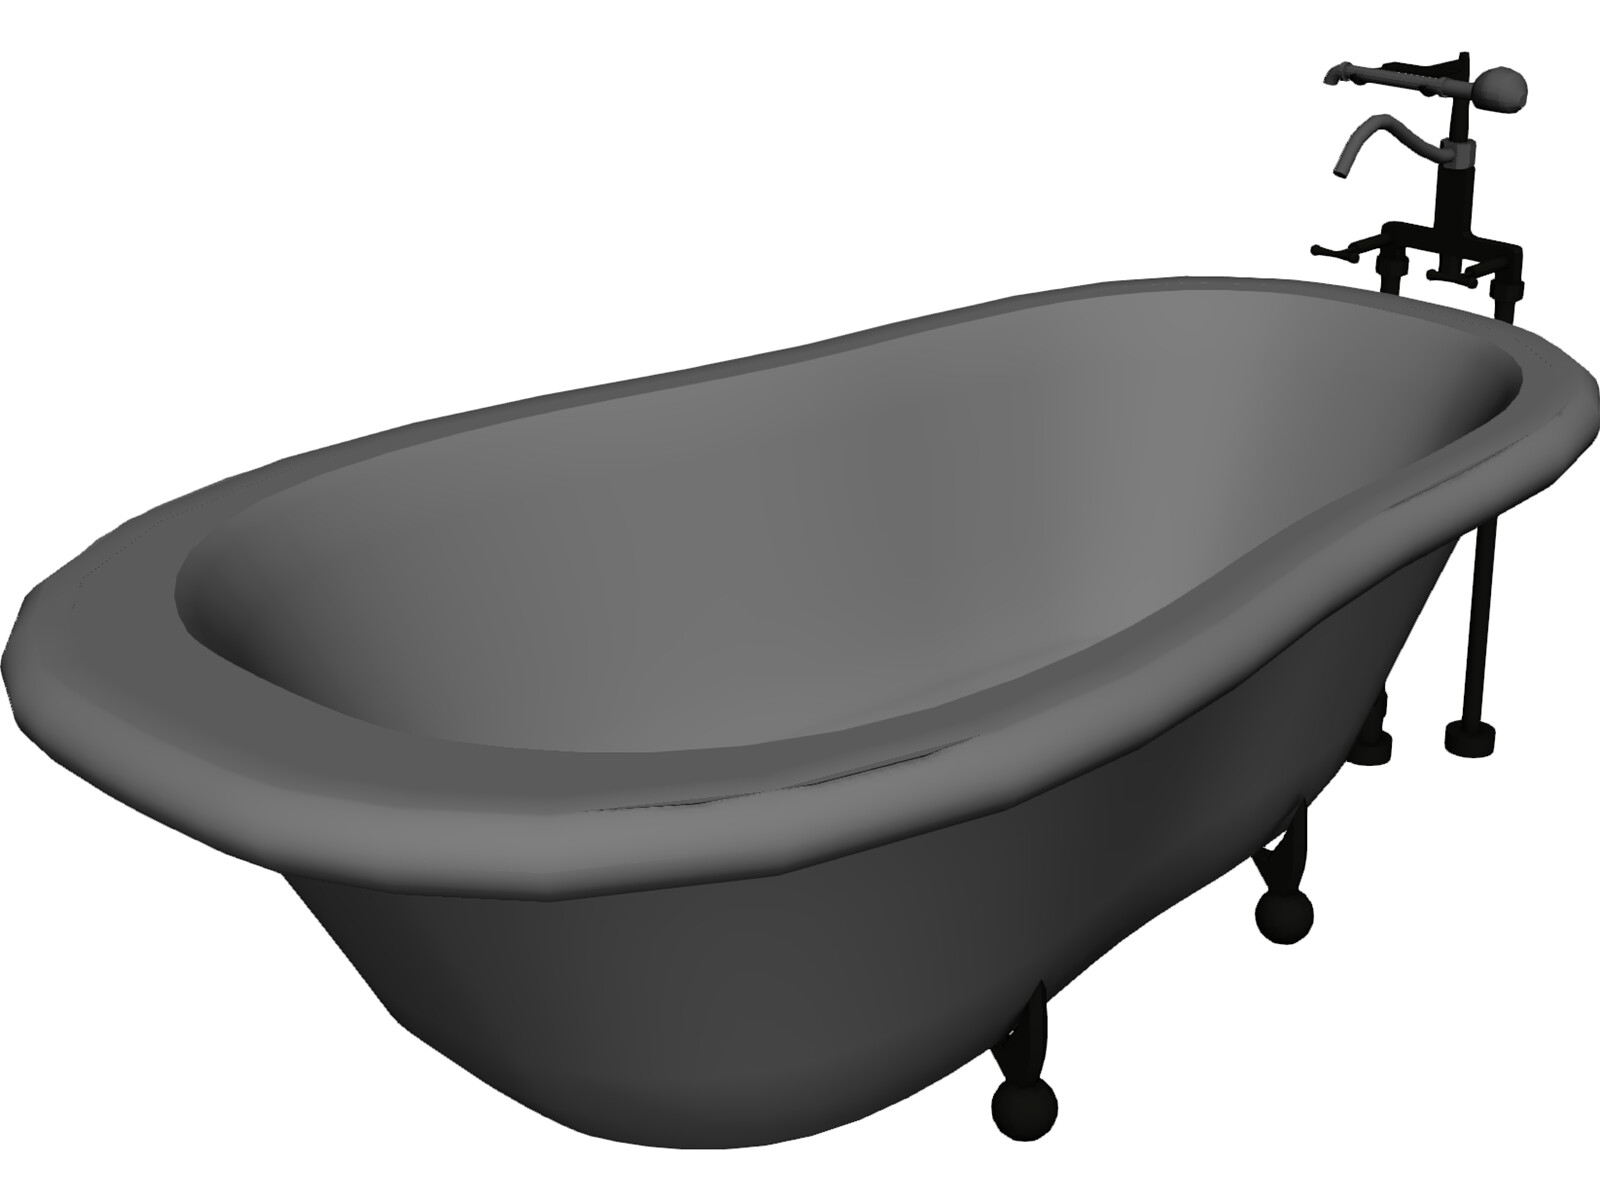 Bathtub 3D Model - 3D CAD Browser